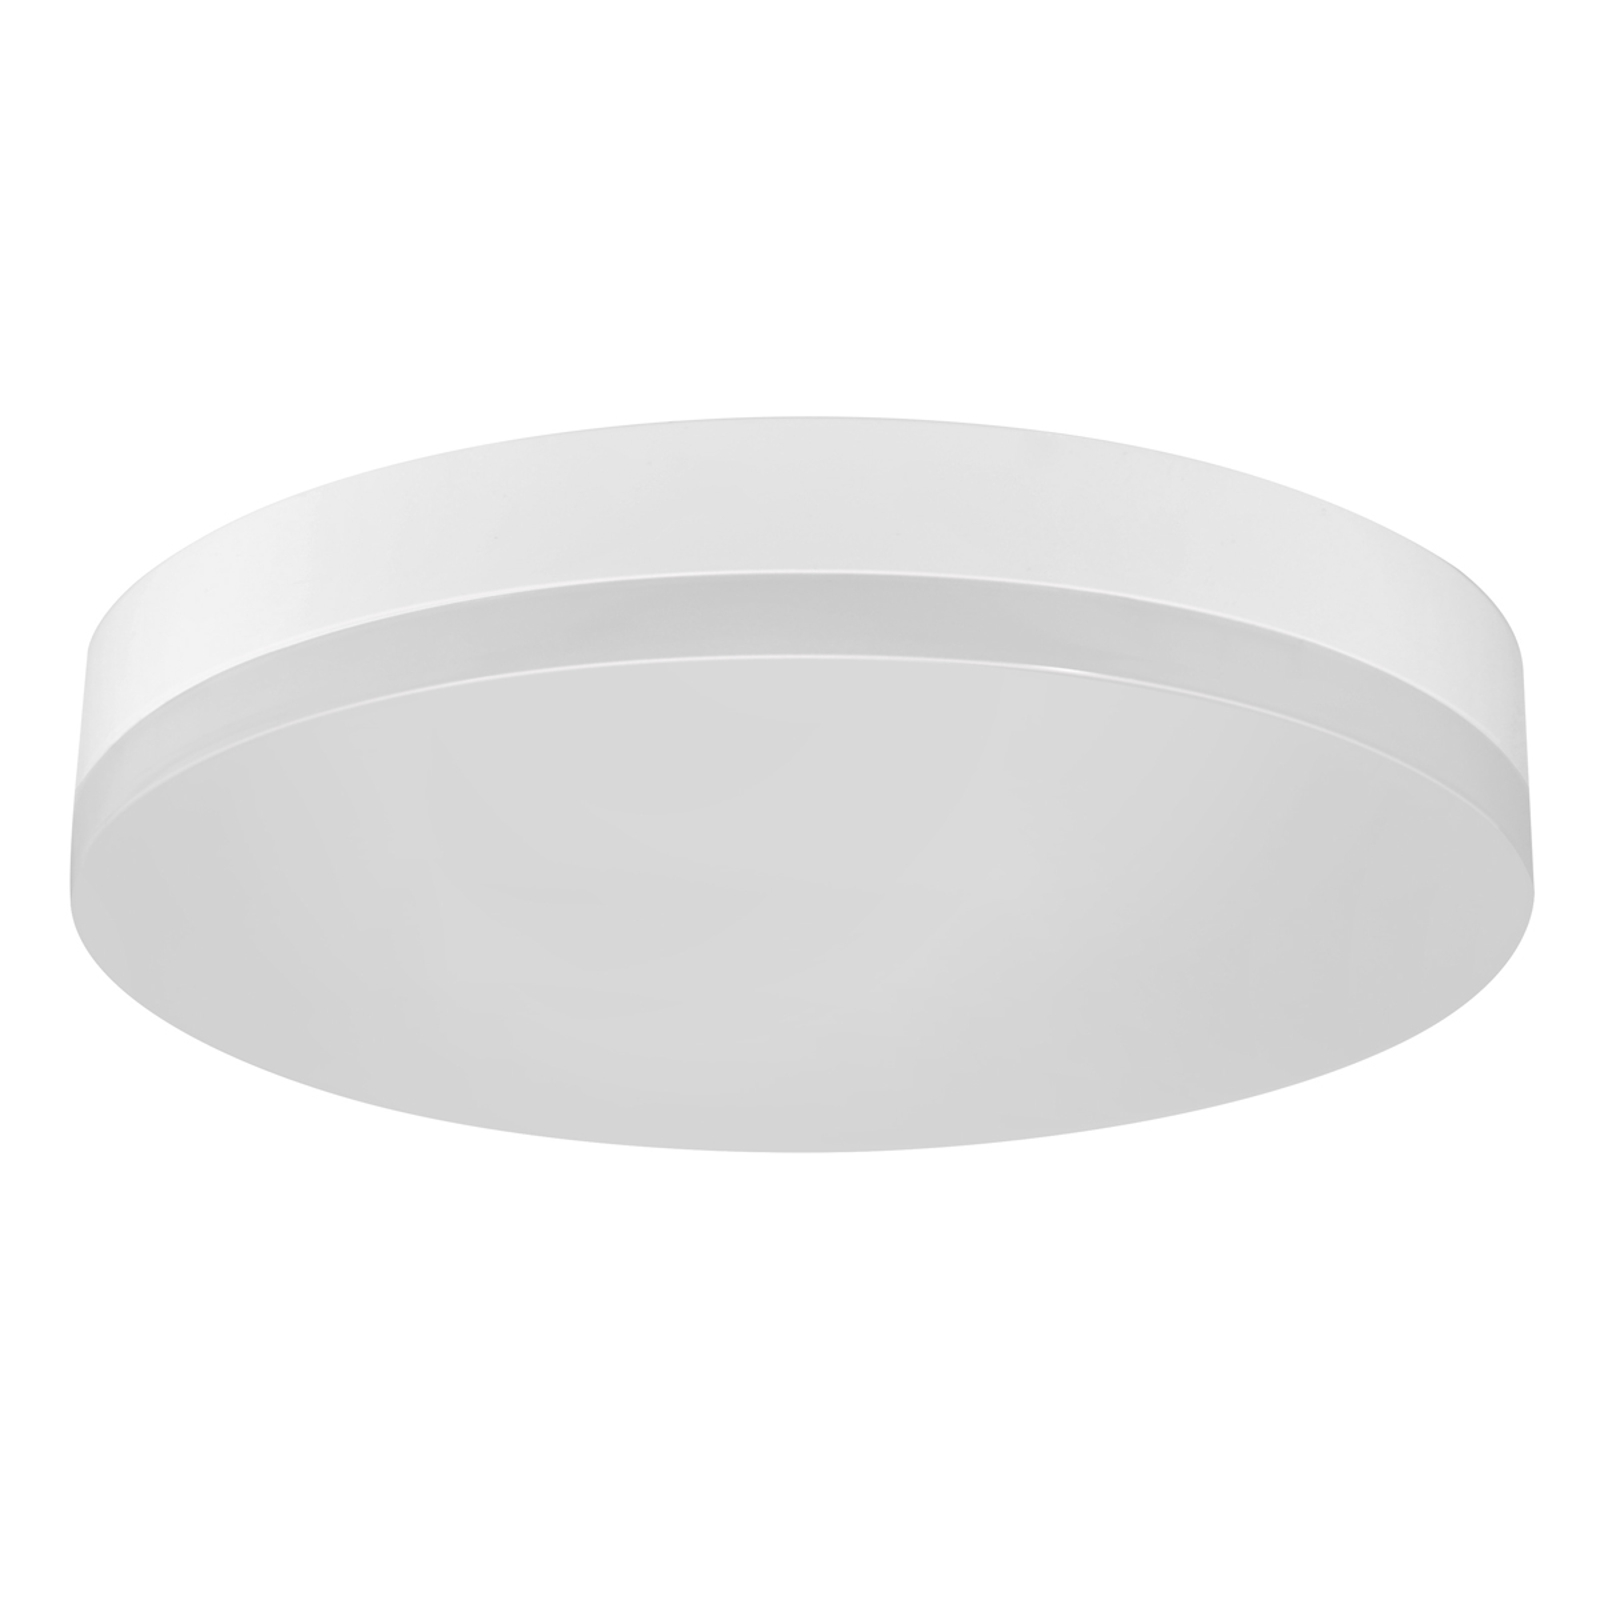 Office Round - LED-Deckenleuchte IP44, warmweiß